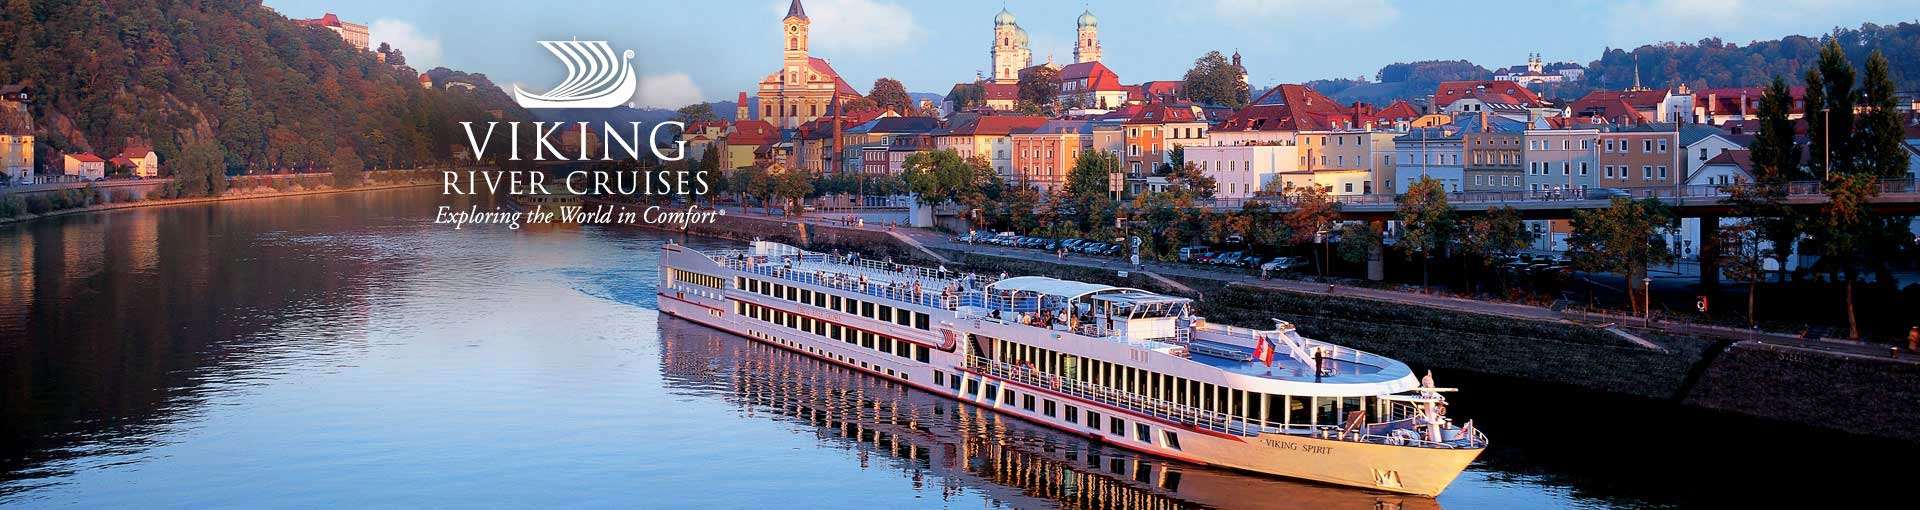 viking-river-cruises-overview-banner.jpg